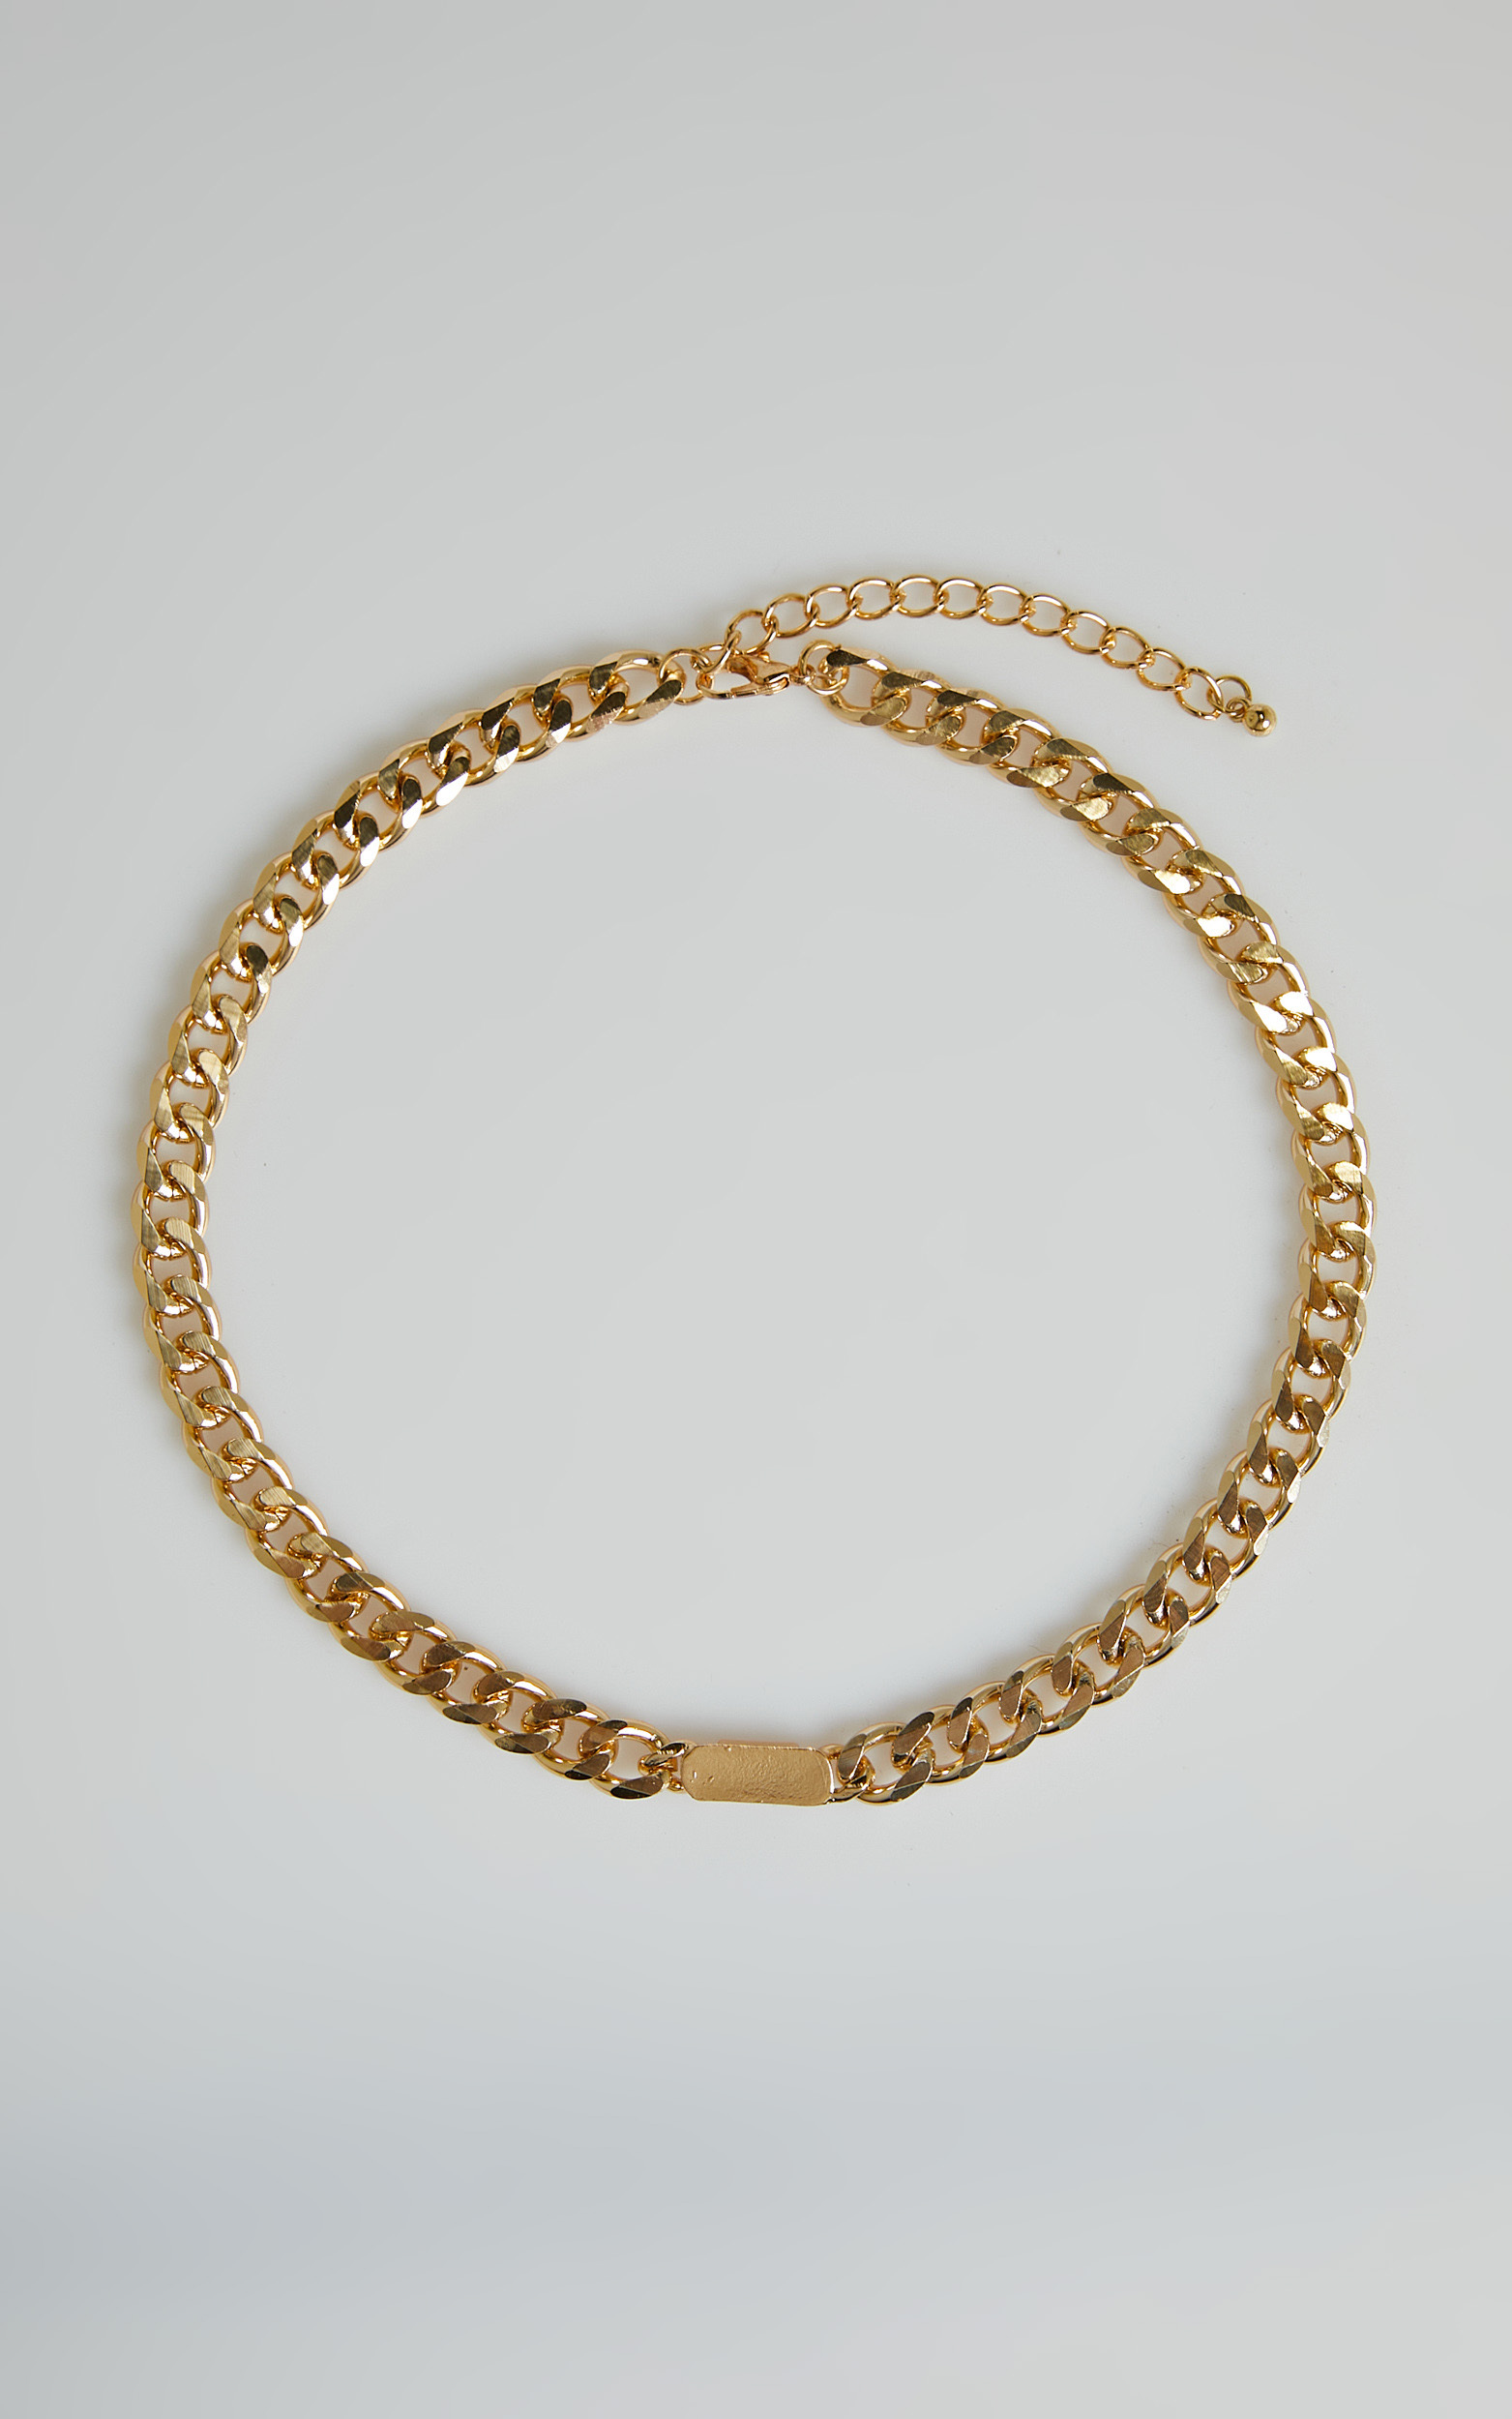 Lottie Necklace in Gold - NoSize, GLD1, hi-res image number null